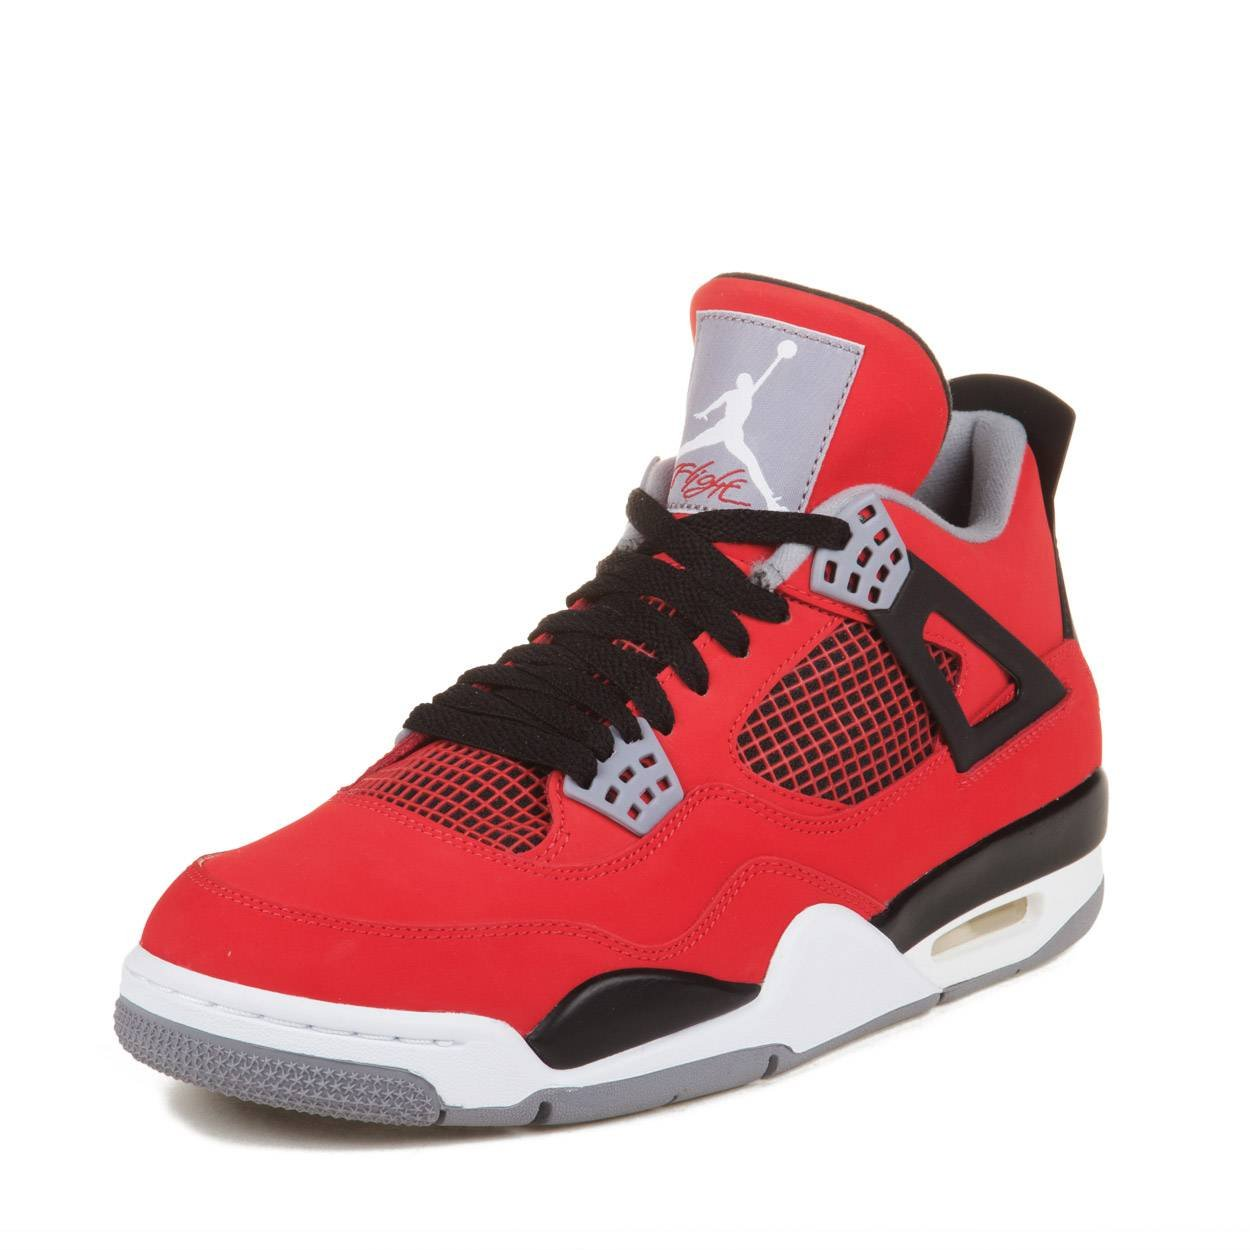 best website fe247 3aa4a Galleon - Air Jordan 4 Retro